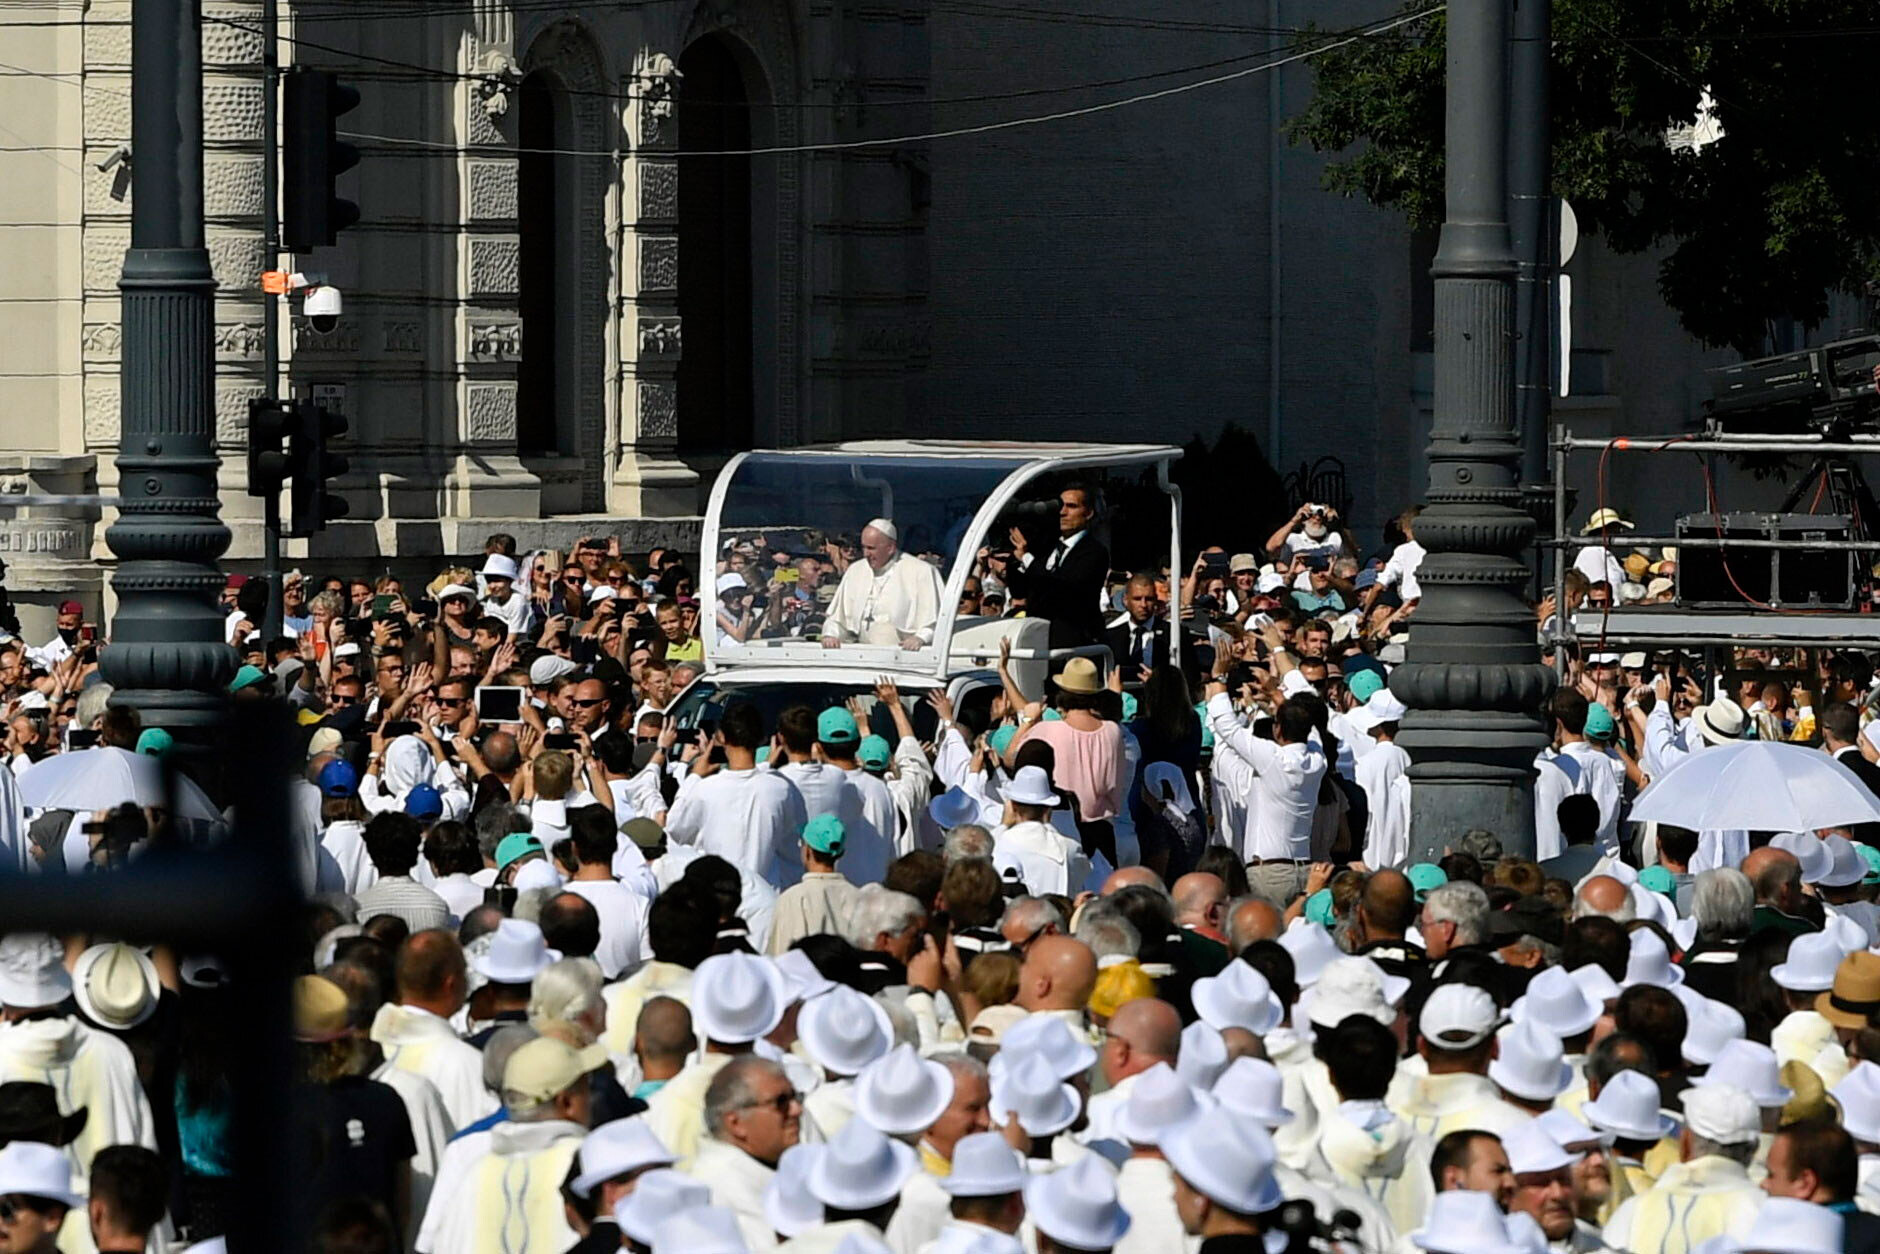 Orban gives Pope a loaded gift during visit to Hungary